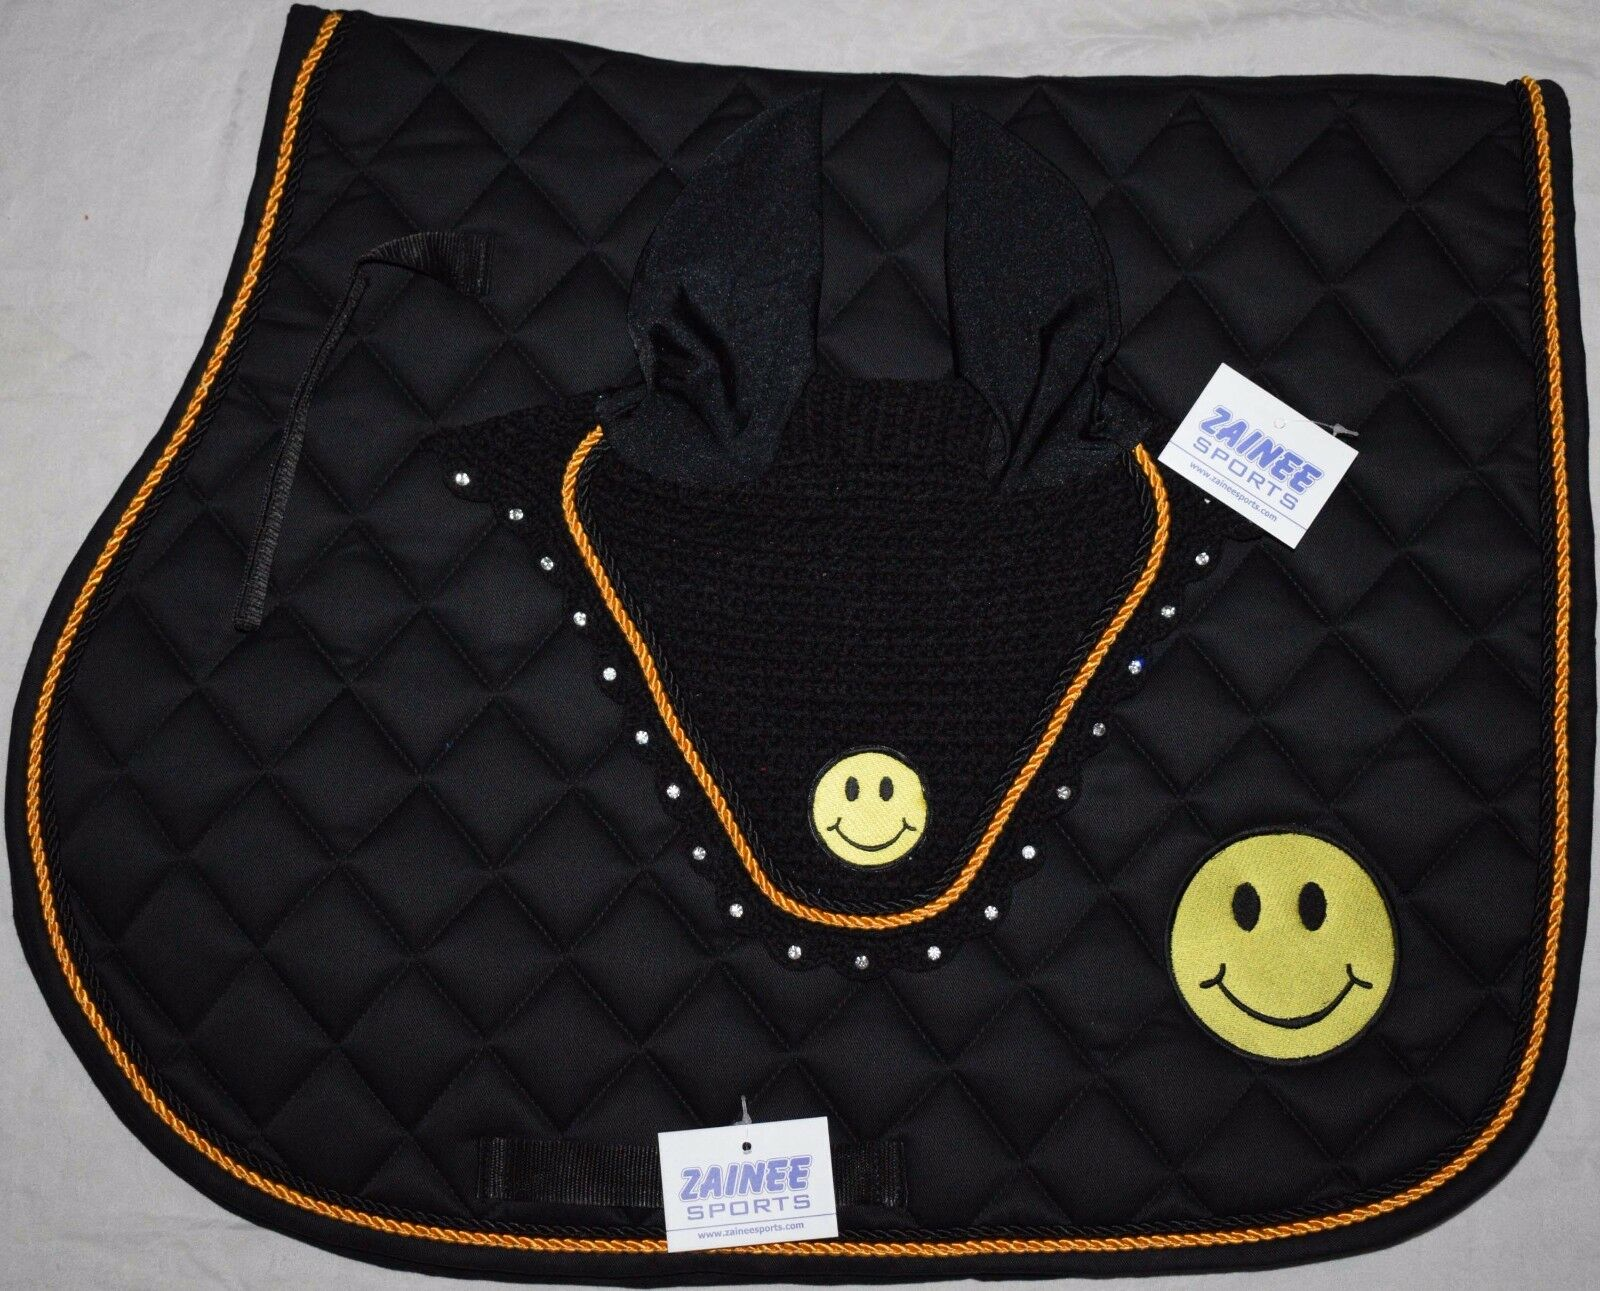 SMILEY SADDLE CLOTH SET FLY VEIL HORSE BONNET DIAMANTE EQUESTRIAN Free Shipping